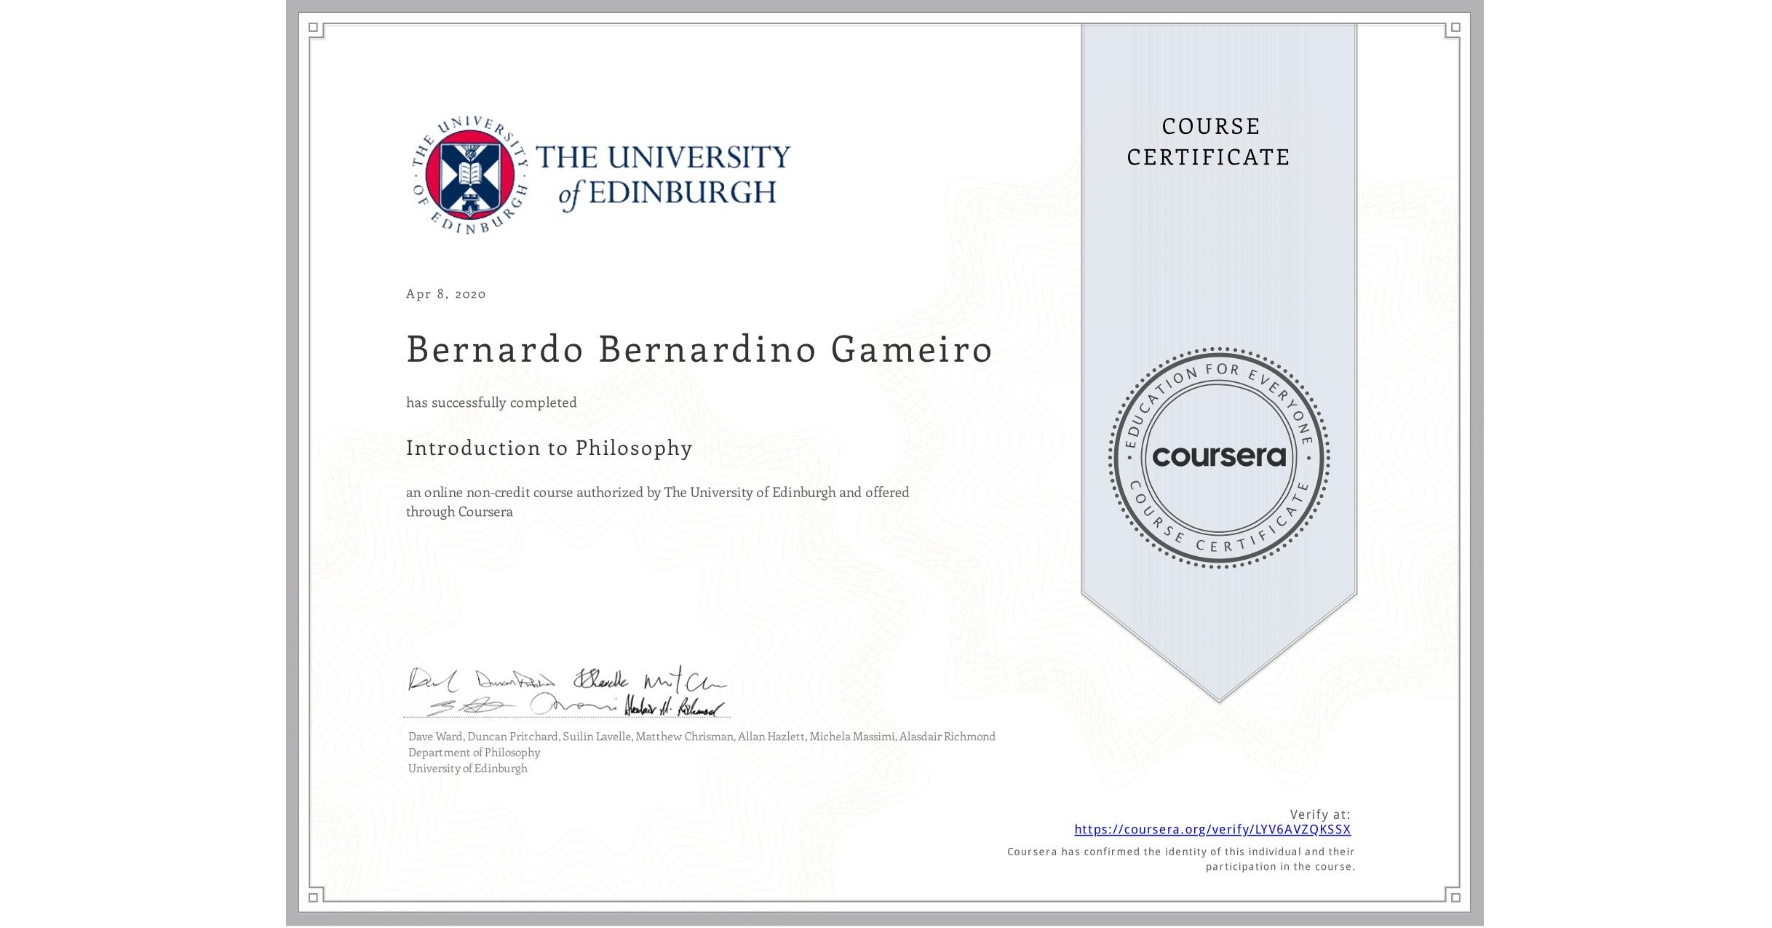 View certificate for Bernardo Bernardino Gameiro, Introduction to Philosophy, an online non-credit course authorized by The University of Edinburgh and offered through Coursera